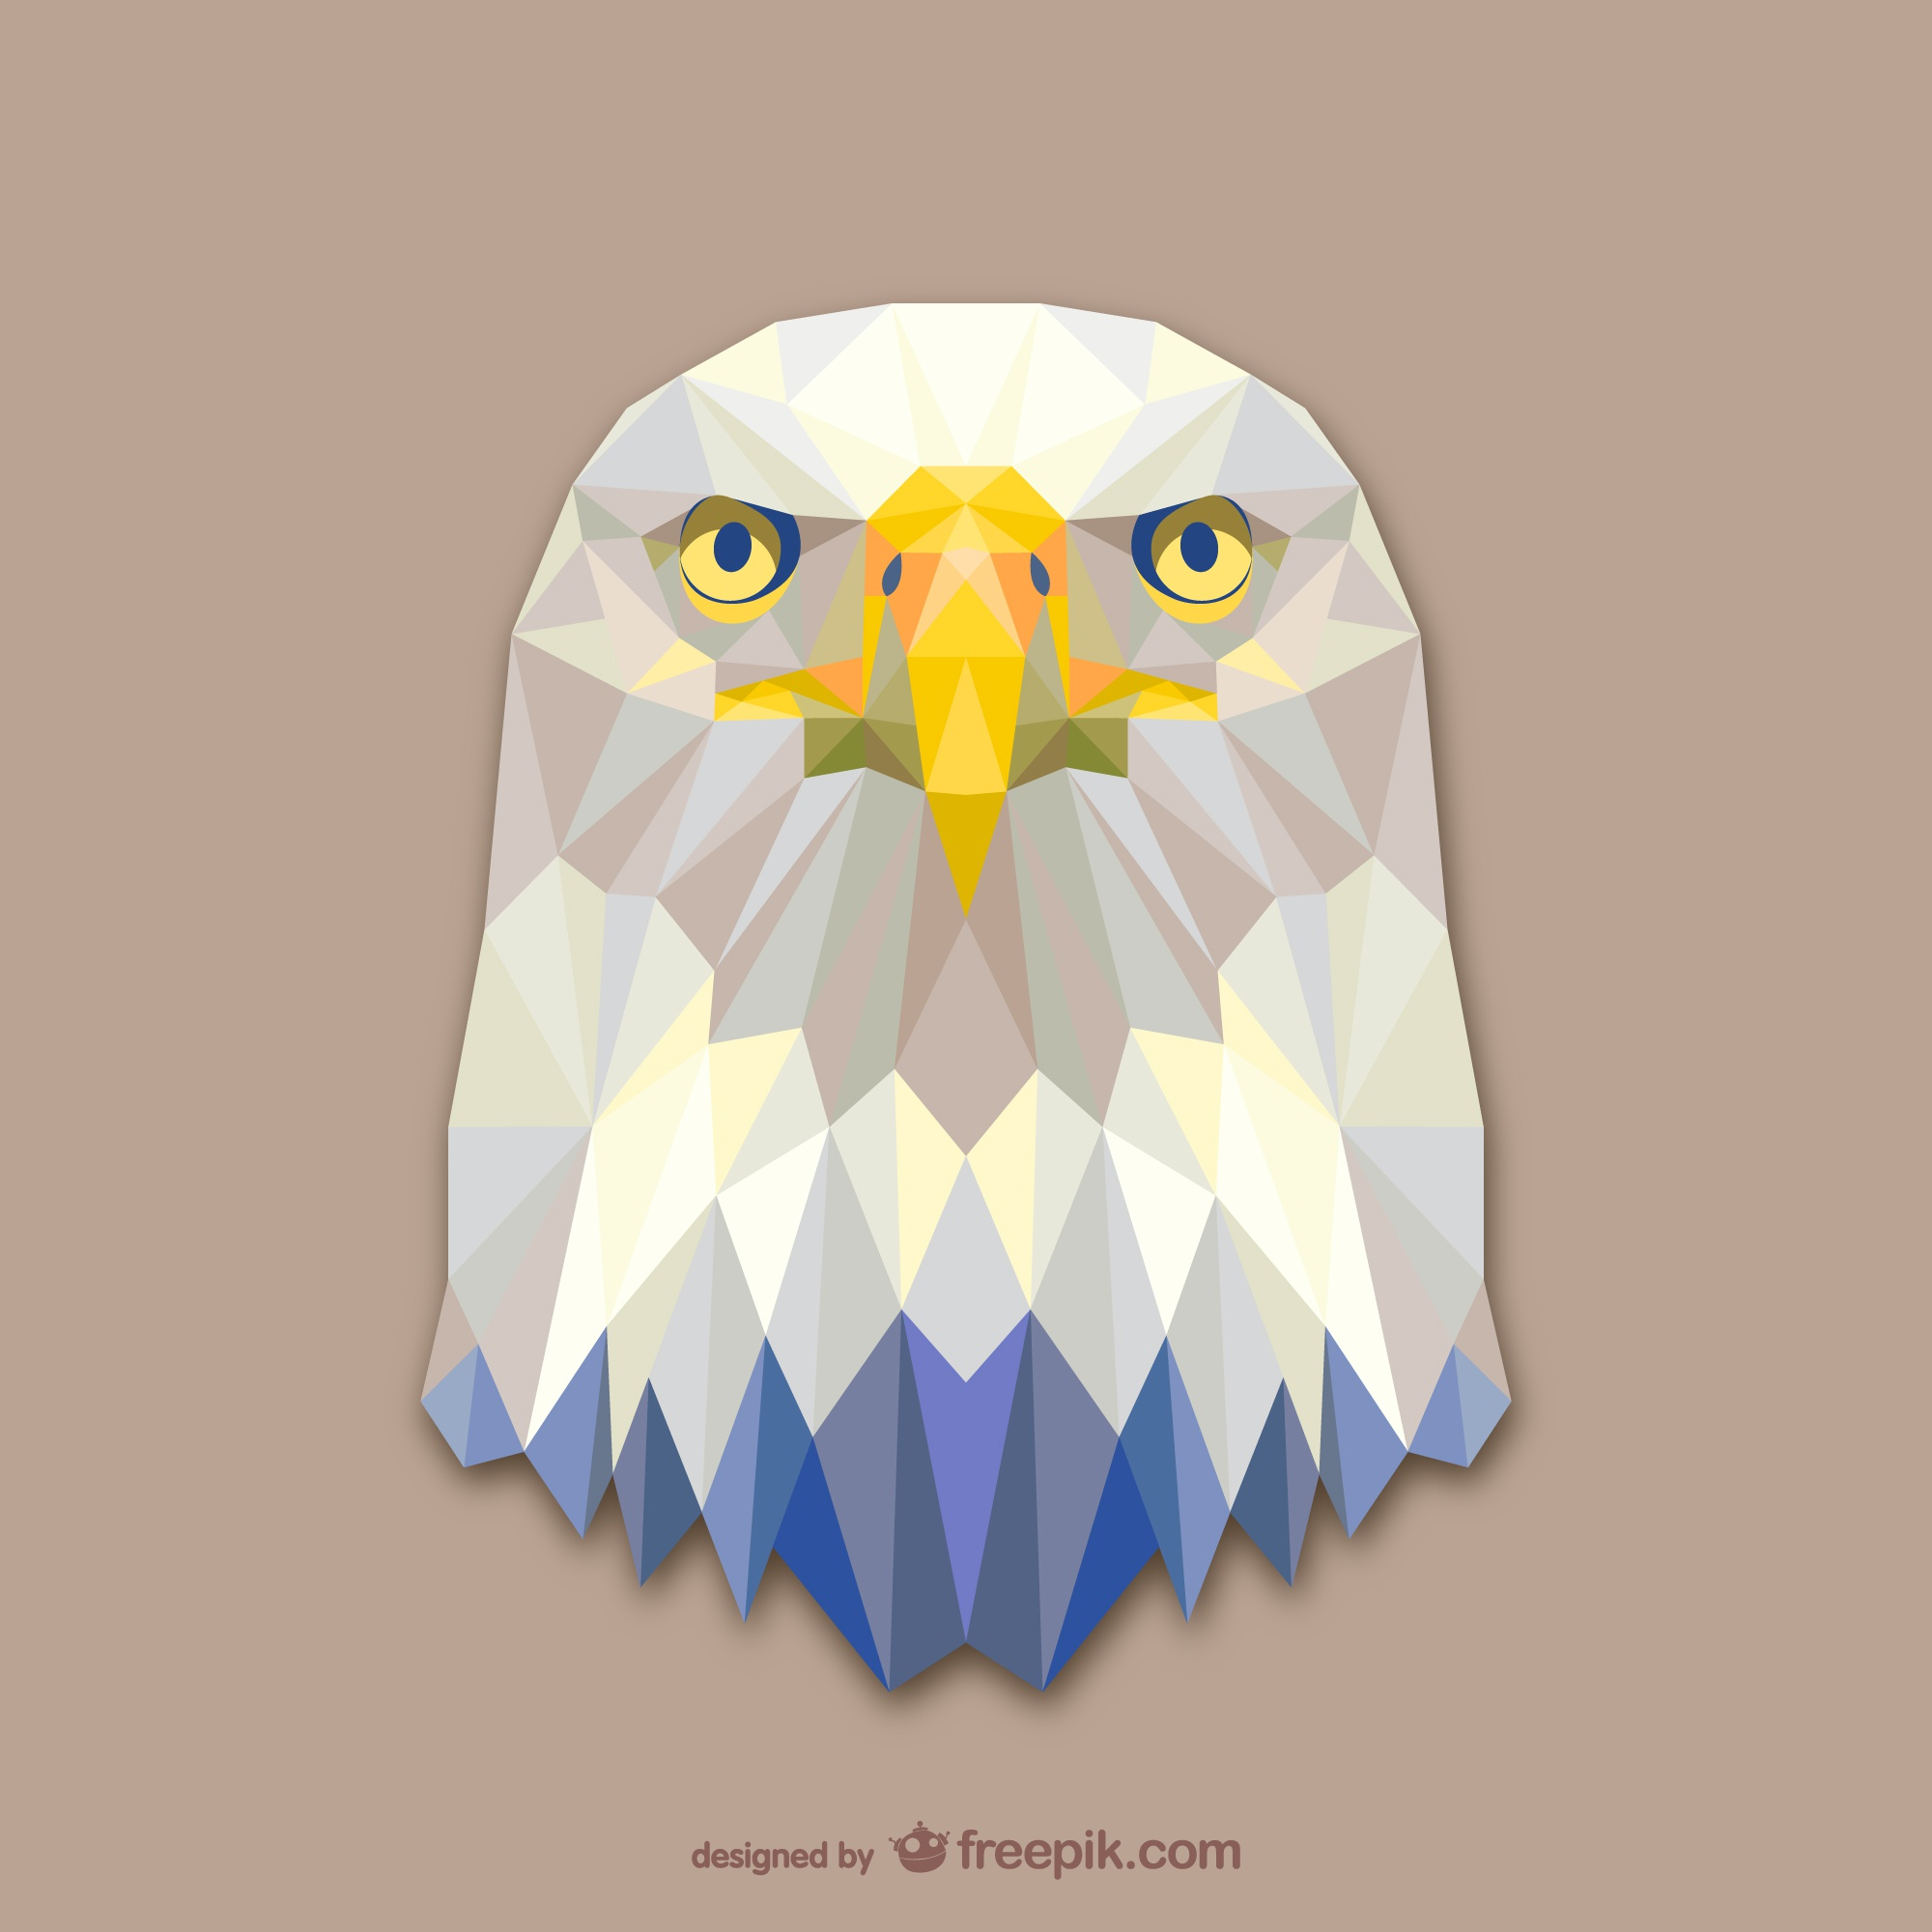 Triangle eagle design